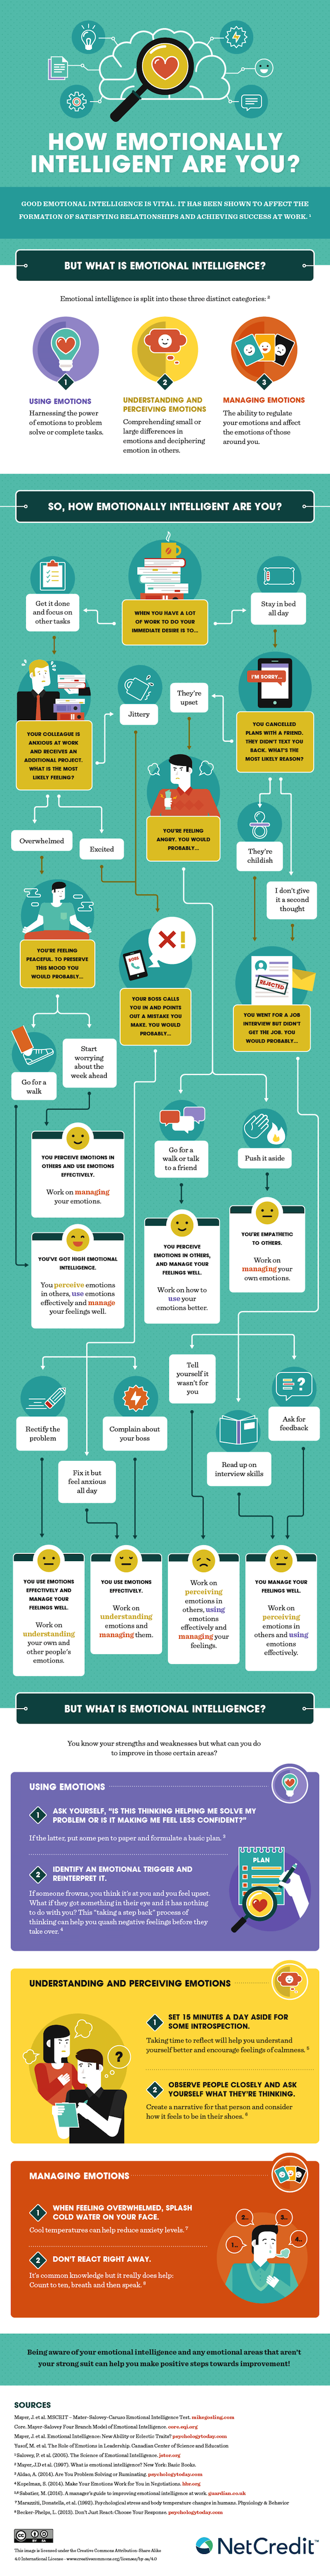 Flowchart: How Emotionally Intelligent Are You, Really?